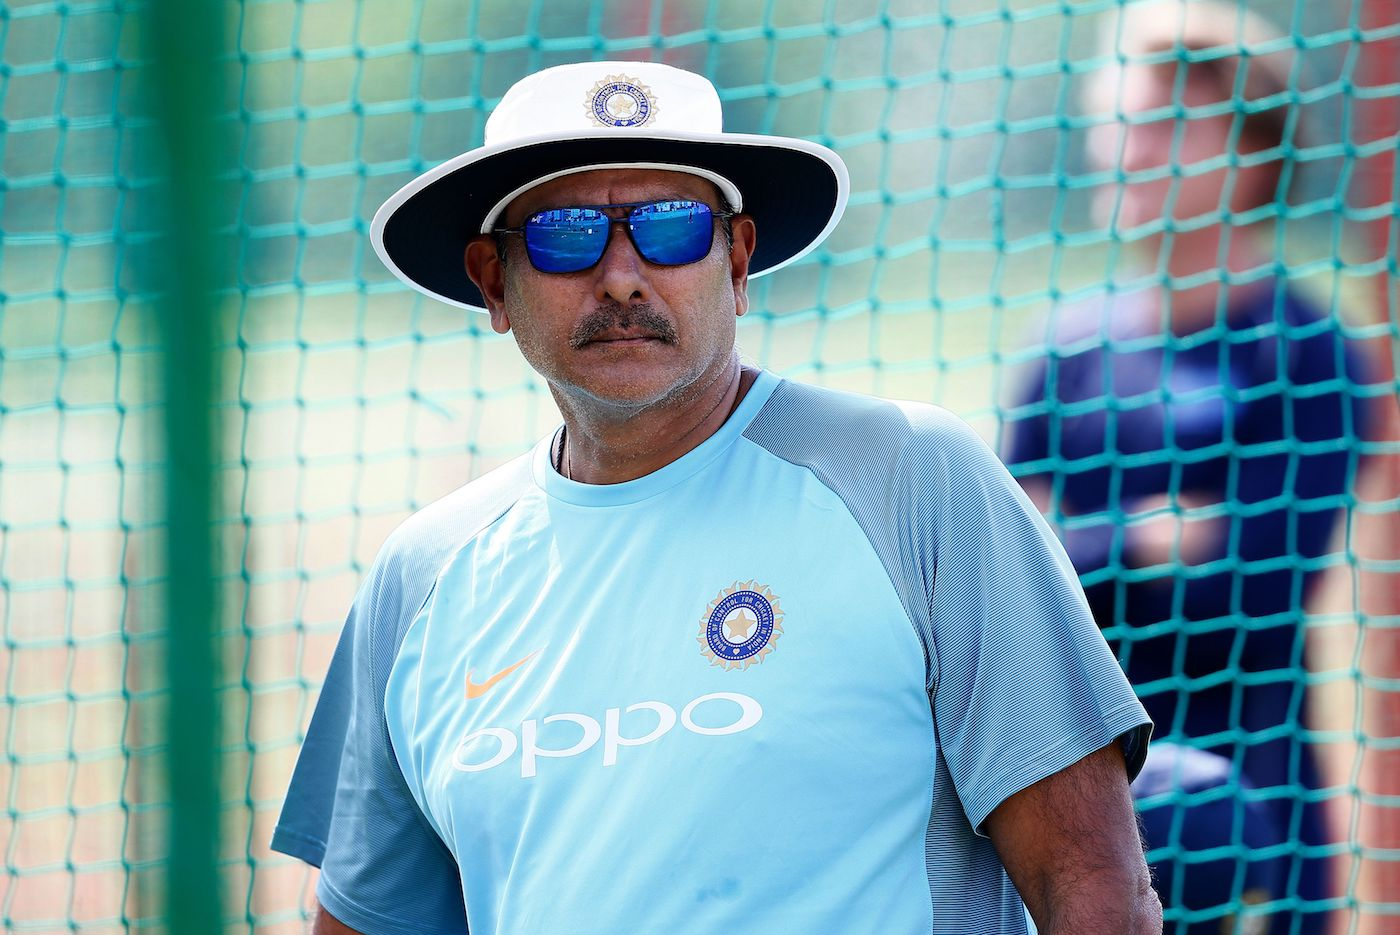 Ravi Shastri Strongly Defended Team India's Performance In England In Review Meeting: Report